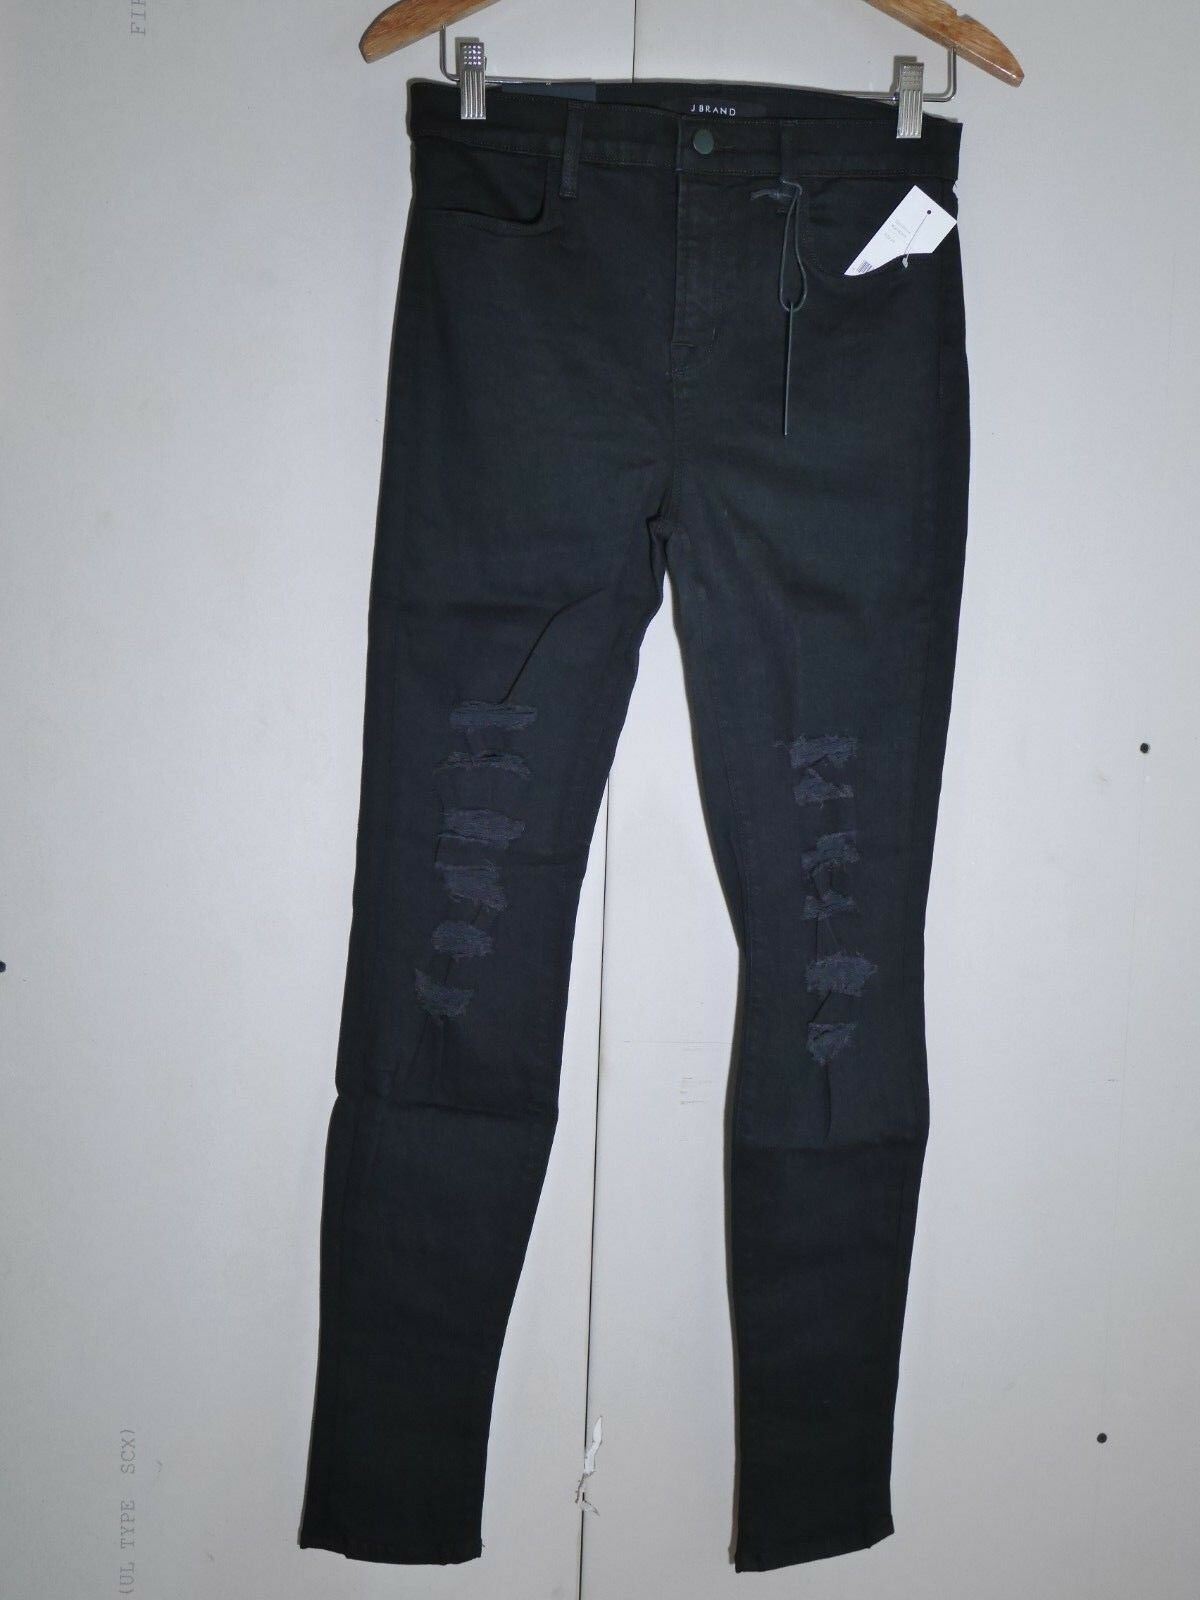 $198 NEW J Brand Maria - High Rise Skinny in Black Heart Destroyed - Size 29 image 2